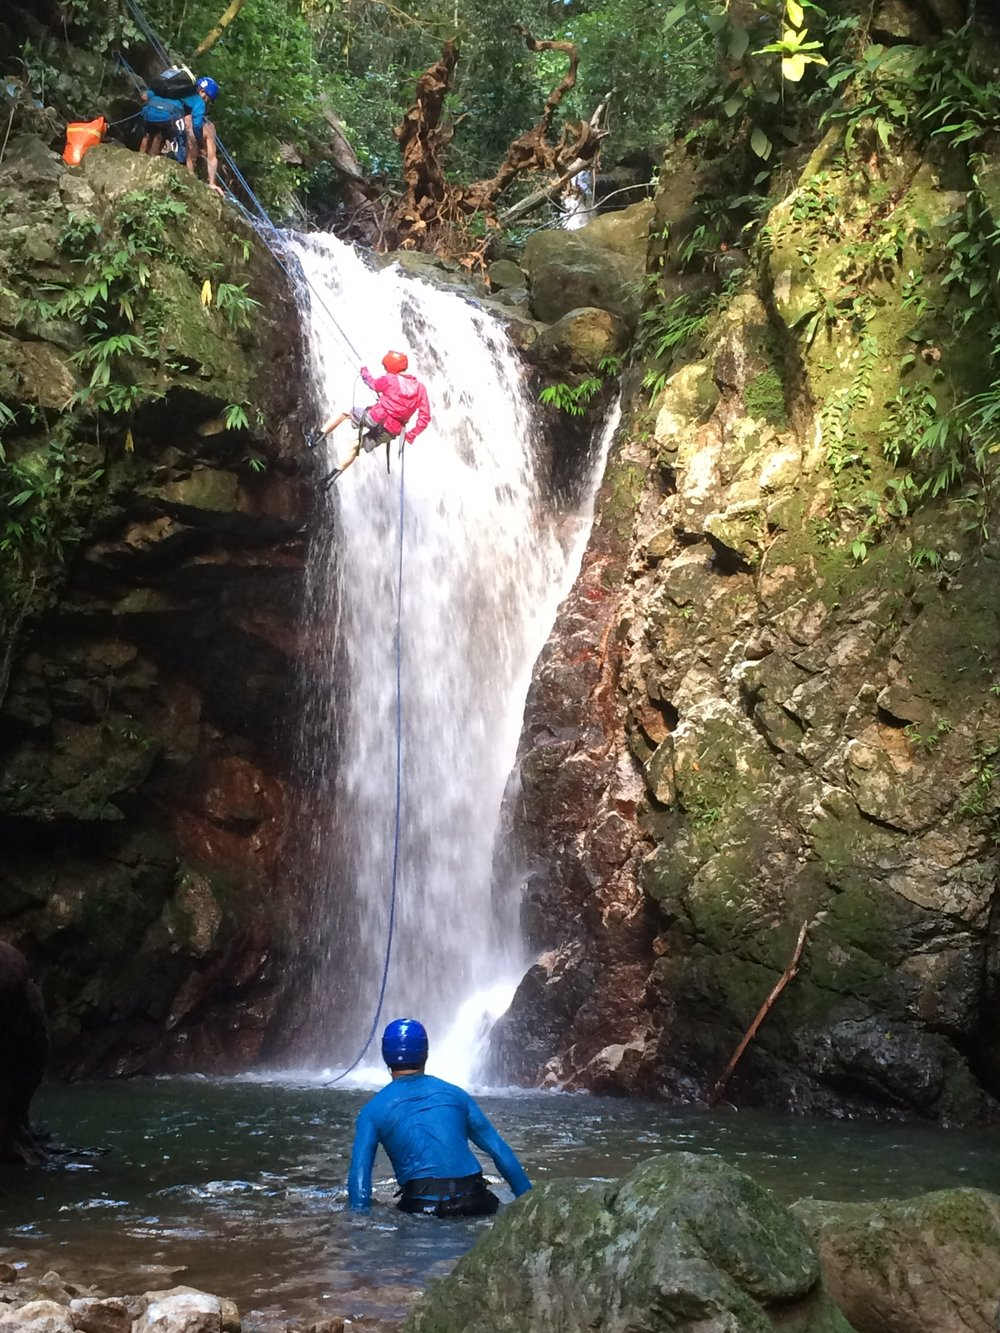 Felix gets steep and deep at 'Hidden Falls'